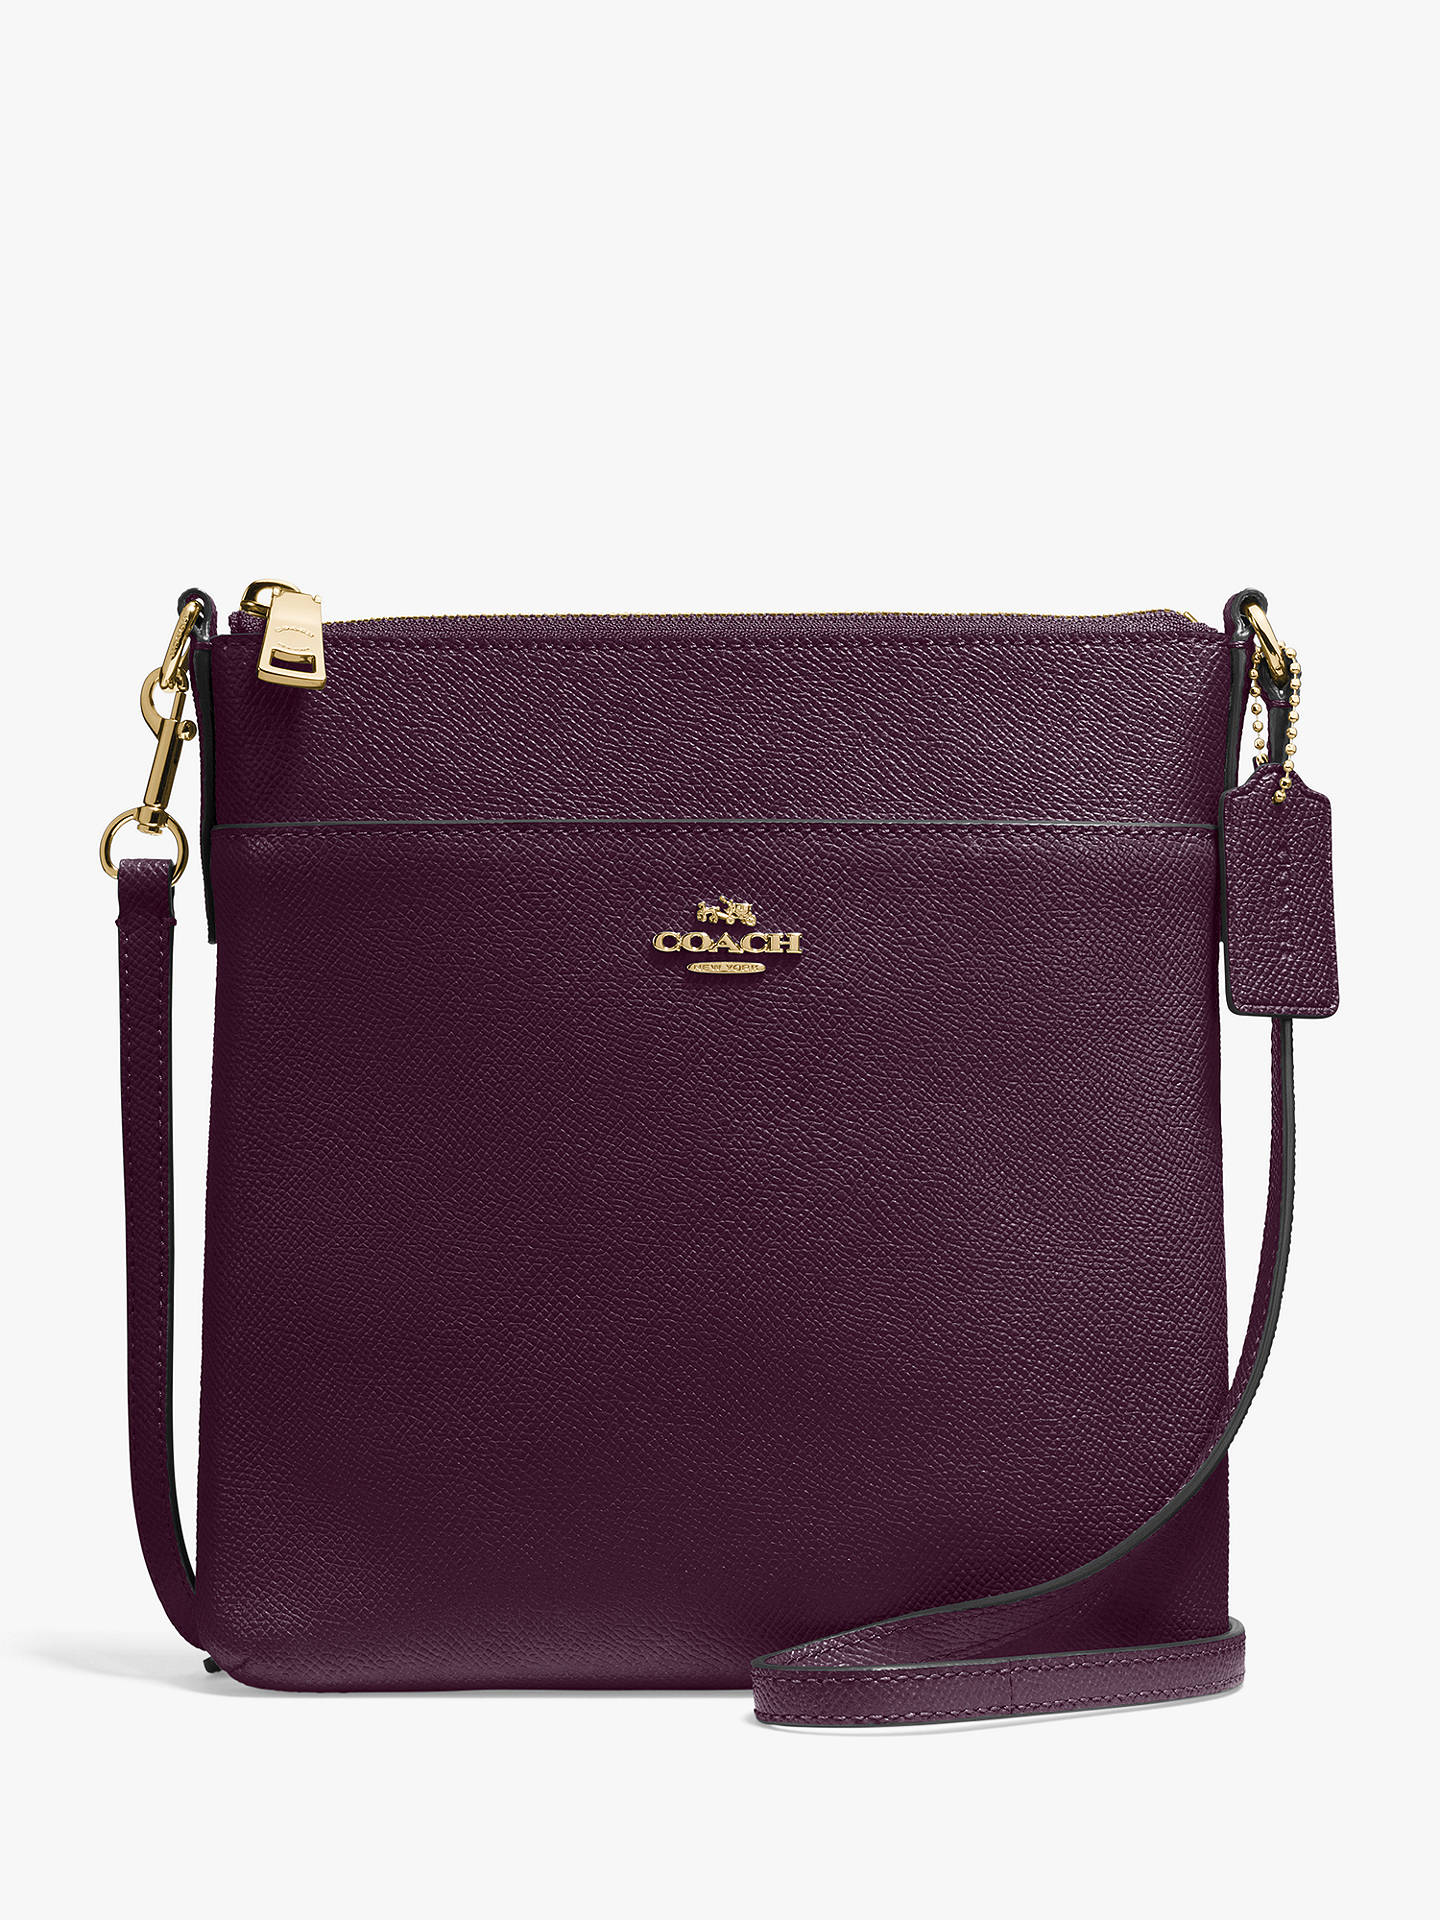 a3c6f420a39e4 Buy Coach Messenger Leather Cross Body Bag, Oxblood Online at johnlewis.com  ...